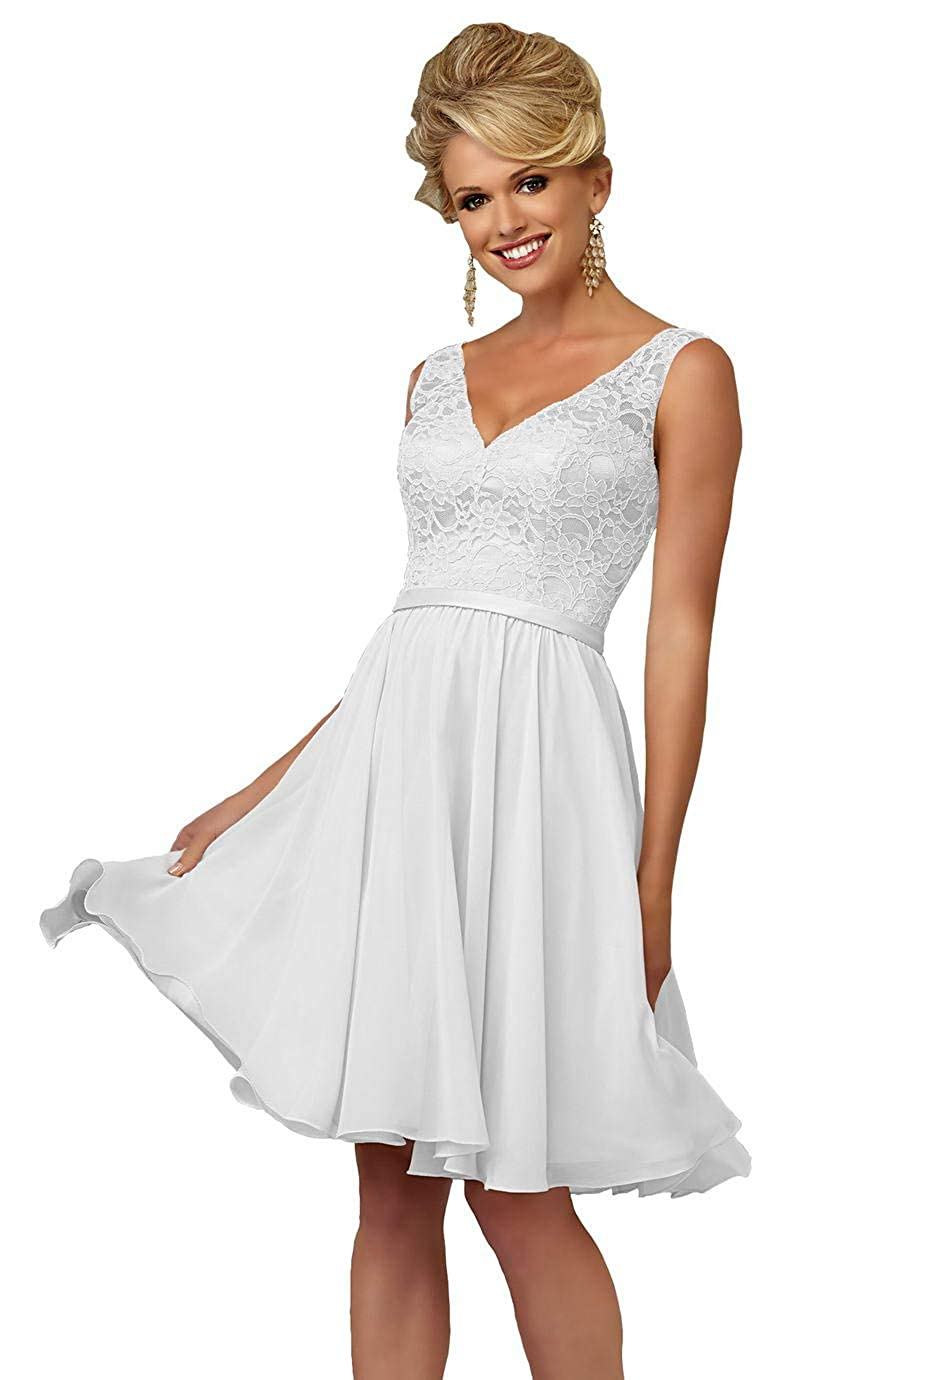 375e70159216 Elegant v-neck formal dress, a-line silhouette, lace bodice and chiffon  skirt, with satin waistband decorated, knee length, invisible bra inside,  ...